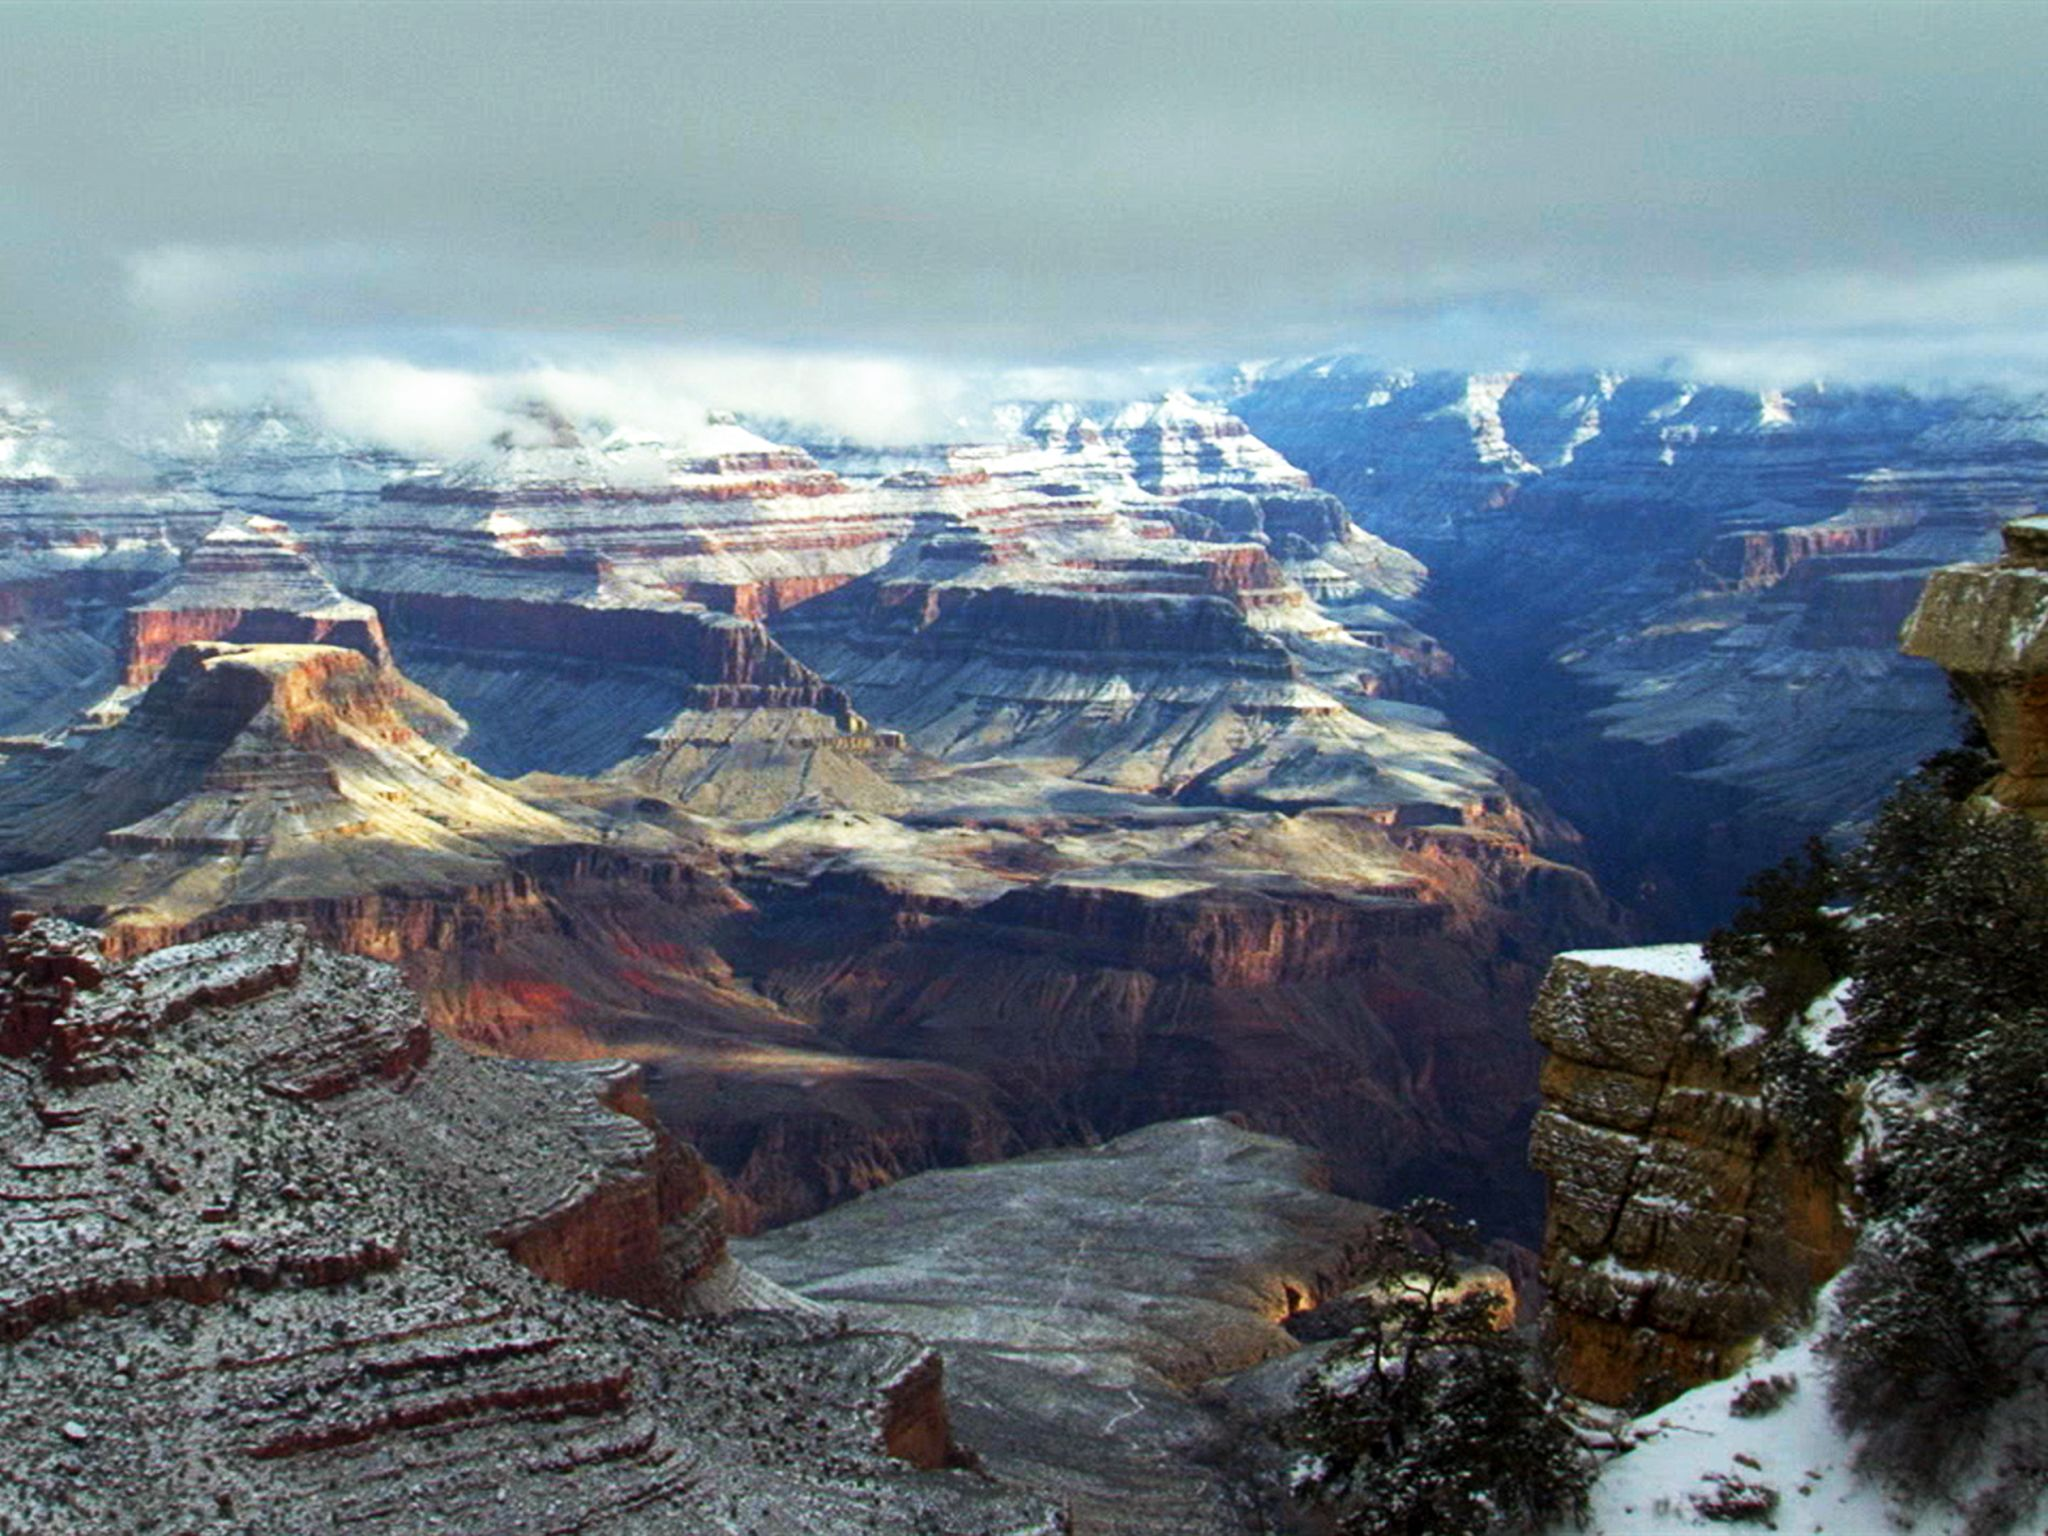 Grand Canyon National Park, Ariz.: Winter is a peaceful time in the Grand Canyon National Park. T... [Photo of the day - February 2016]